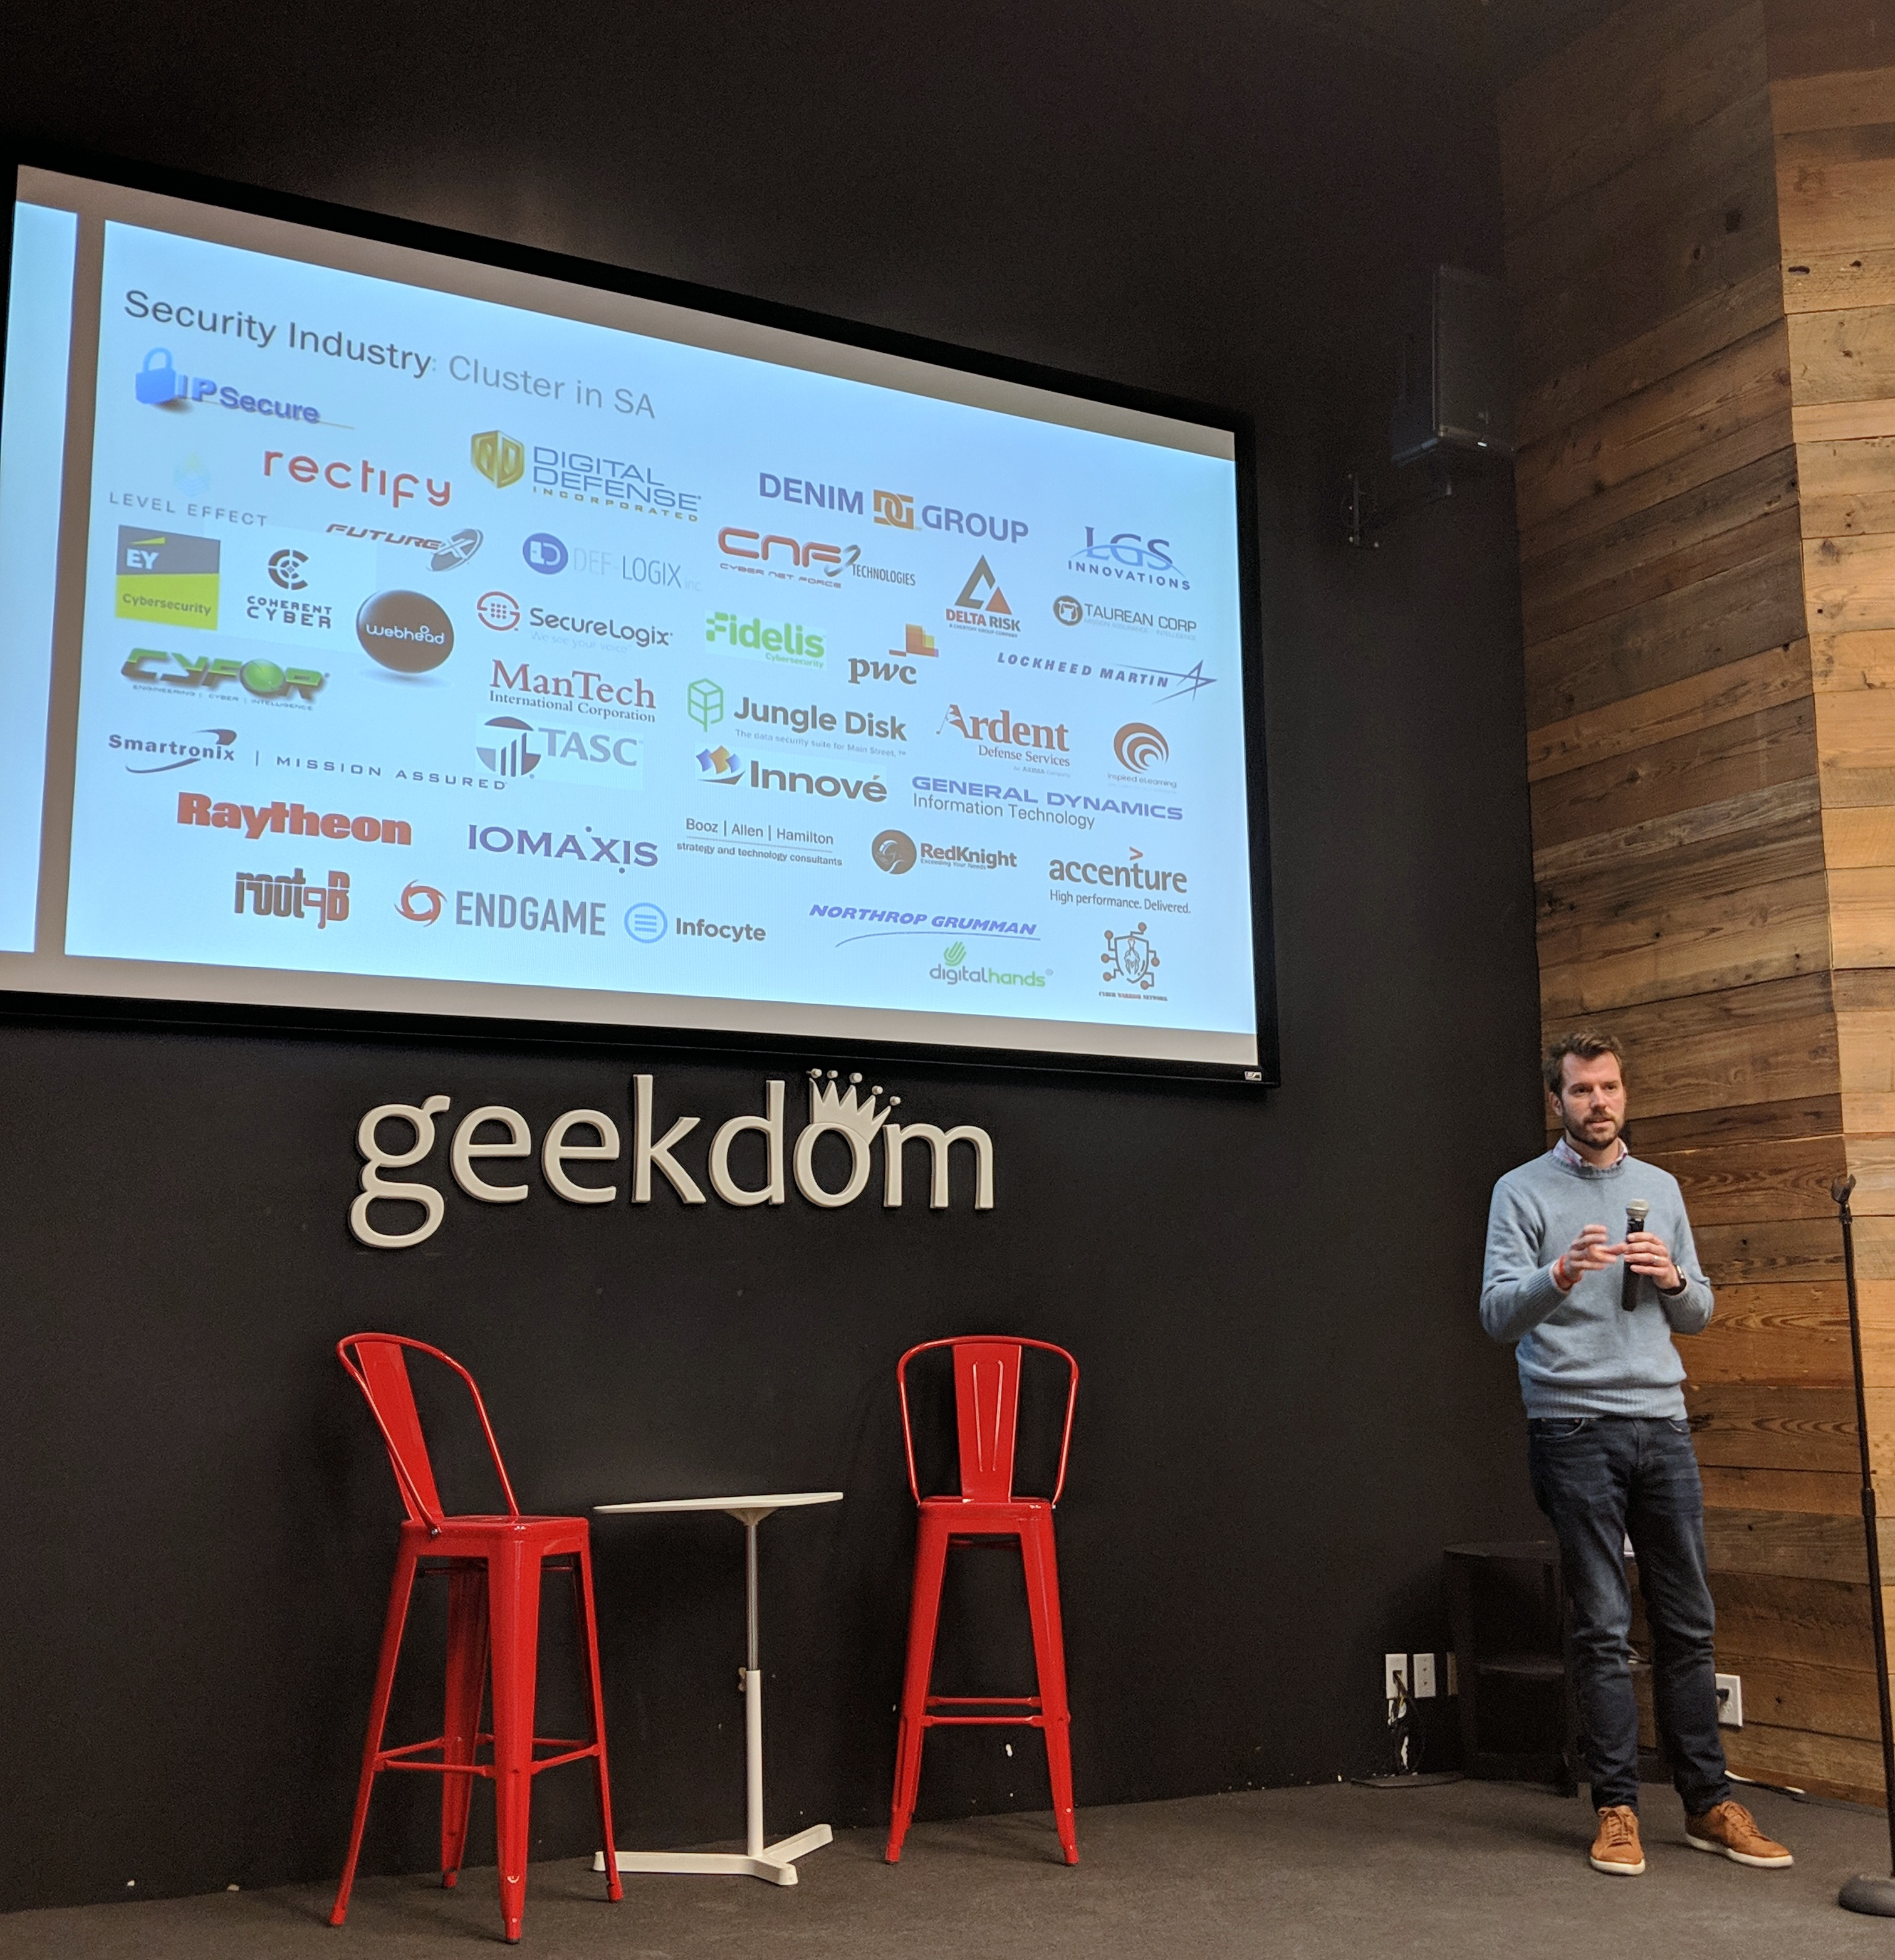 Port San Antonio vice president for cybersecurity Will Garrett talks about the growth in San Antonio's cybersecurity community at the Geekdom State of the Ecosystem. Photo credit: Startups San Antonio.